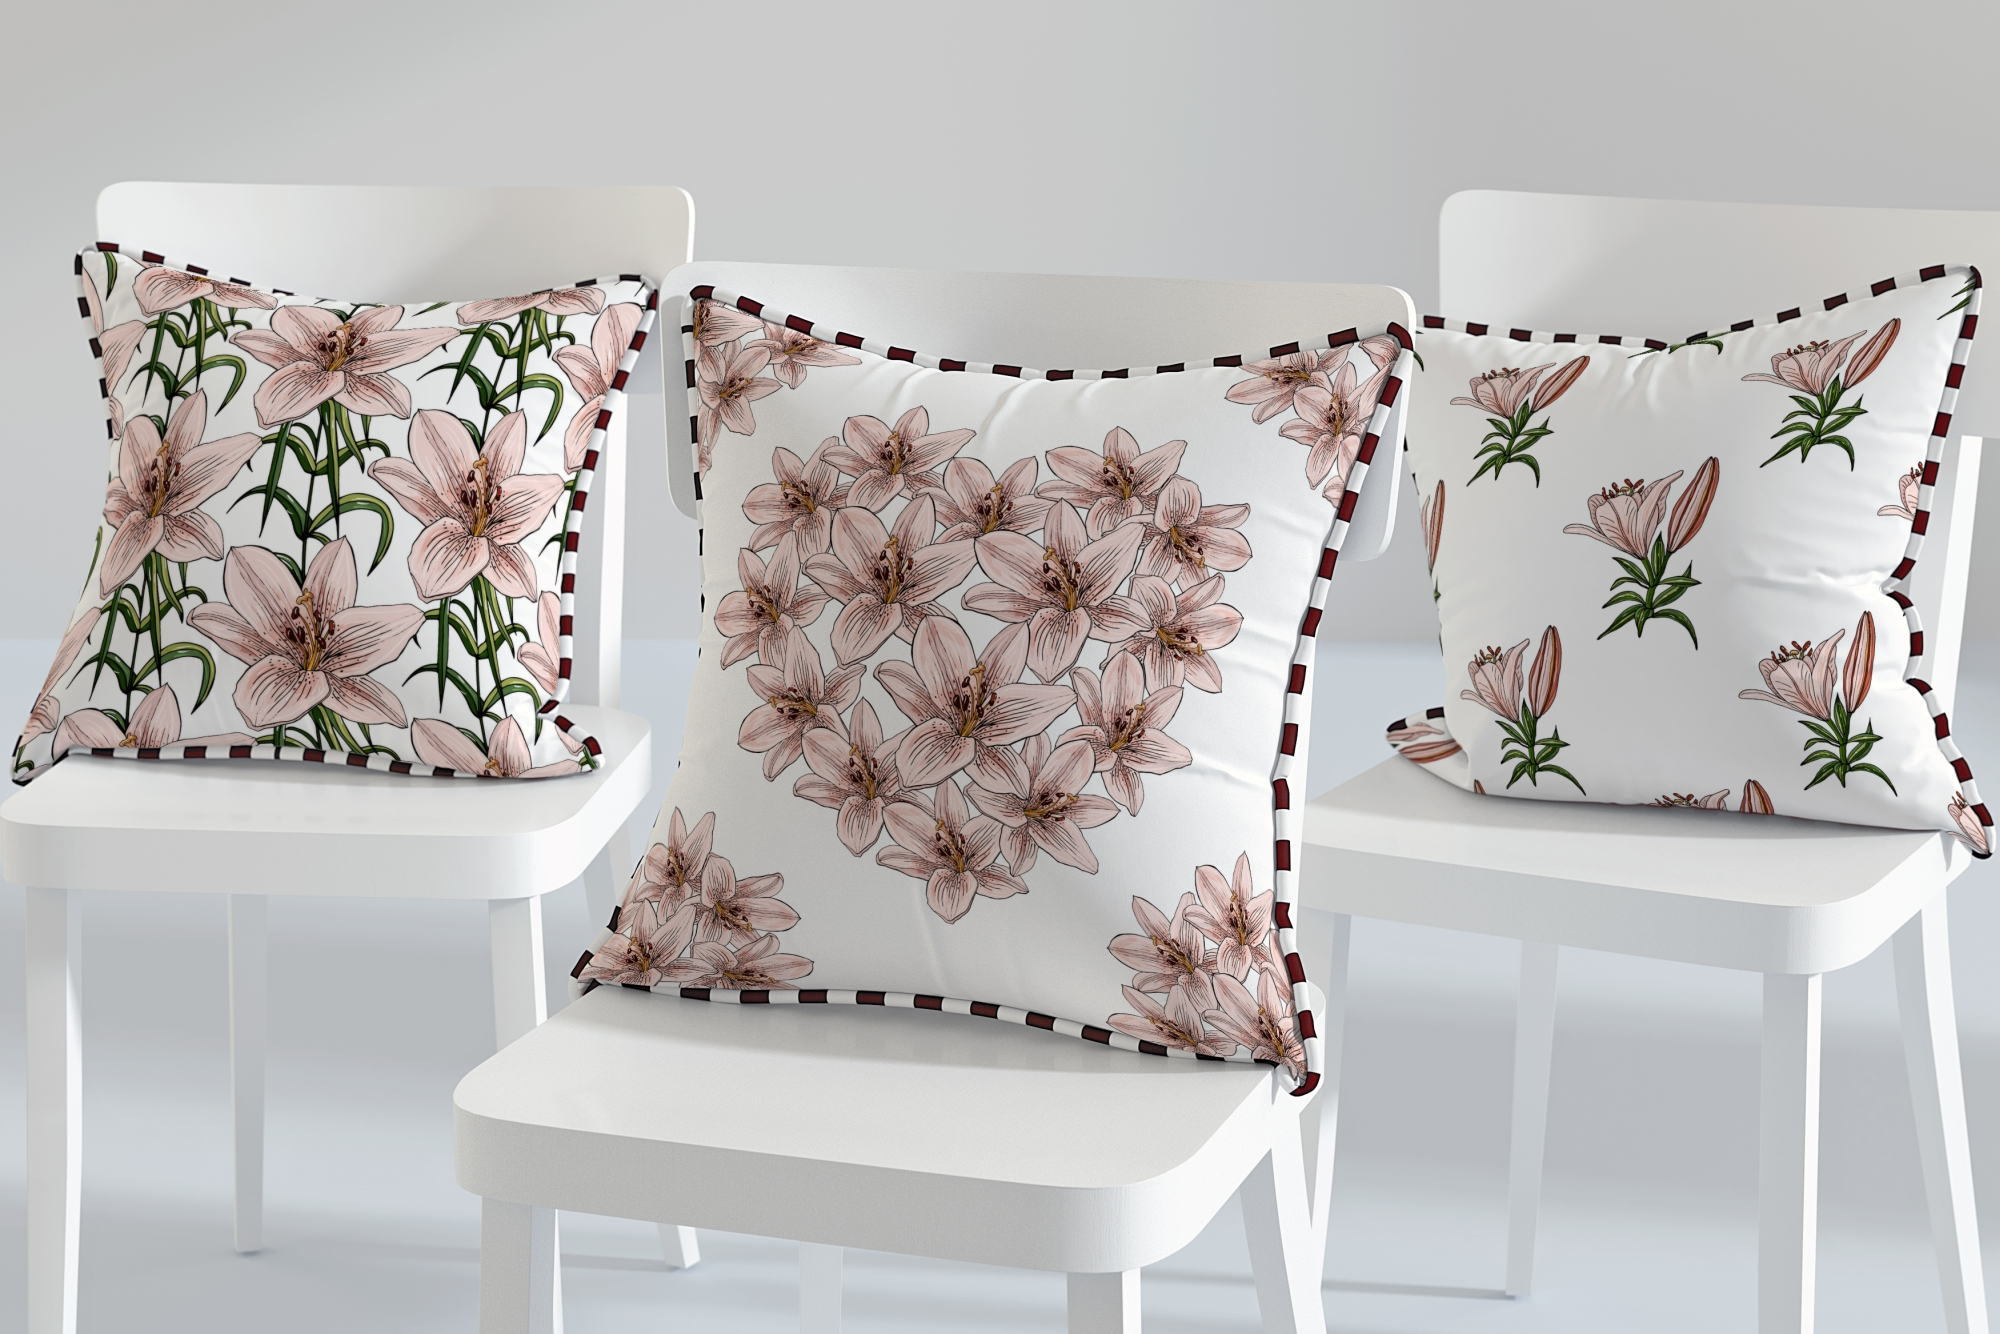 Design with lily flowers. Seamless patterns and postcards. example image 3